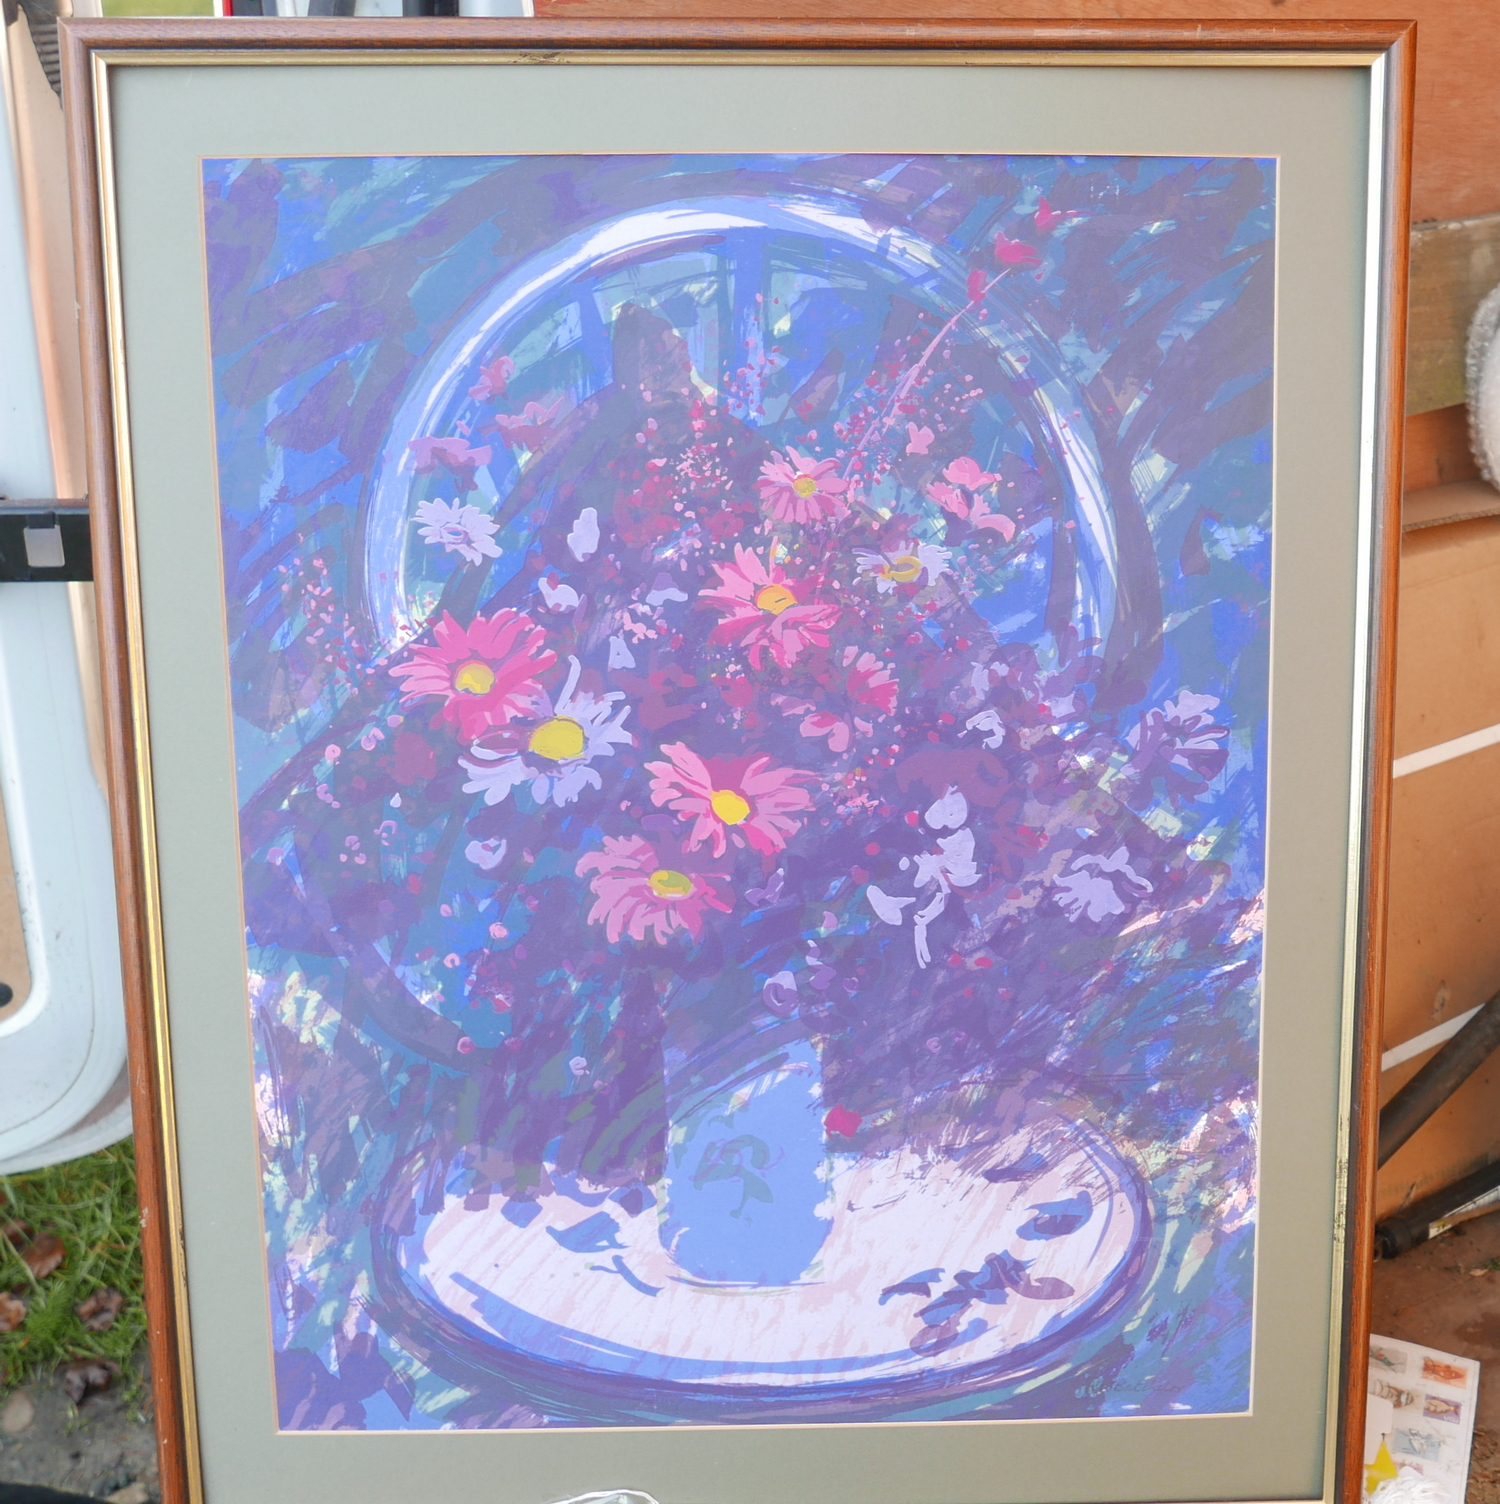 "Lot 50G - Bob Baxter Peacock Printers Print Fairfield Flowers. - actual print 27 1/2"" x 21 1/2"" frame 33x27"